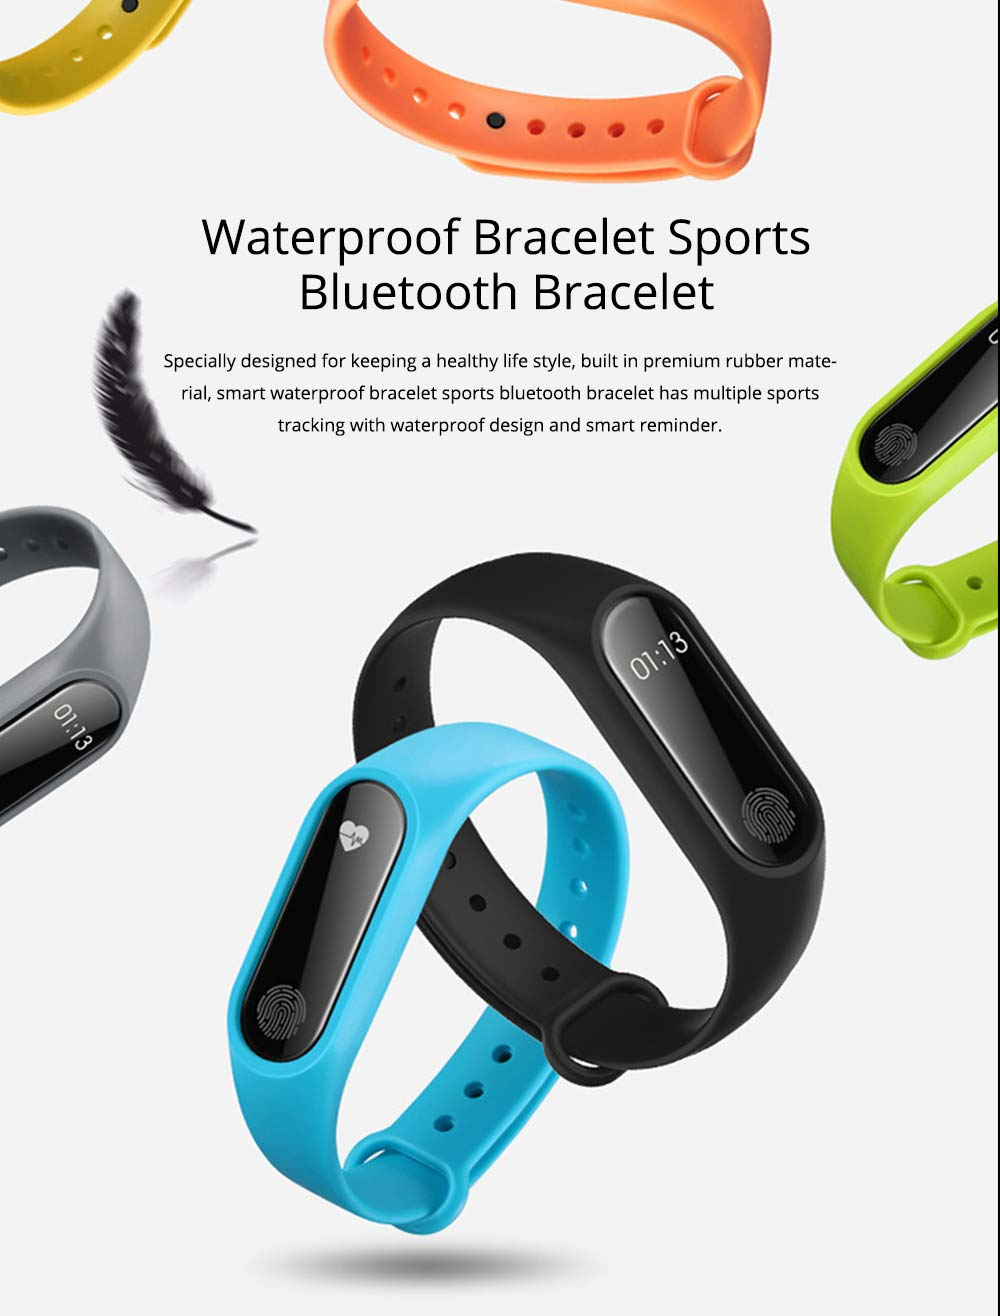 Waterproof Sports Bluetooth Smart Bracelet for Attendance Clock System, Call Reminder and Rate Monitoring 0